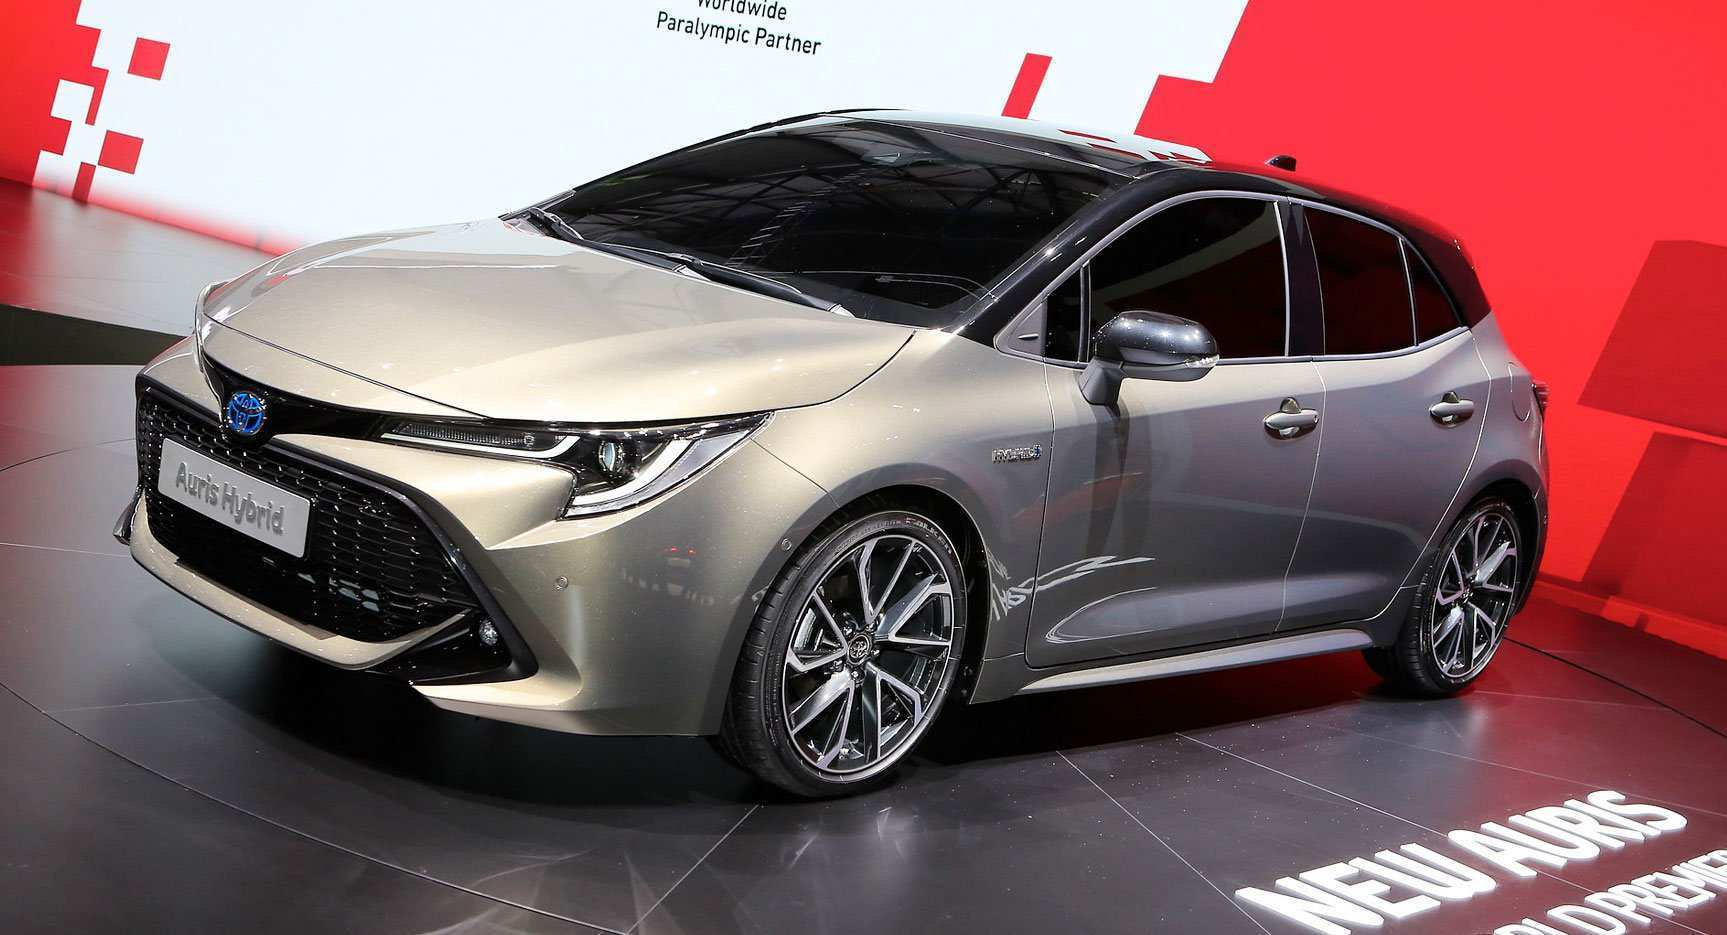 56 New 2019 Toyota Auris Release Date And Concept